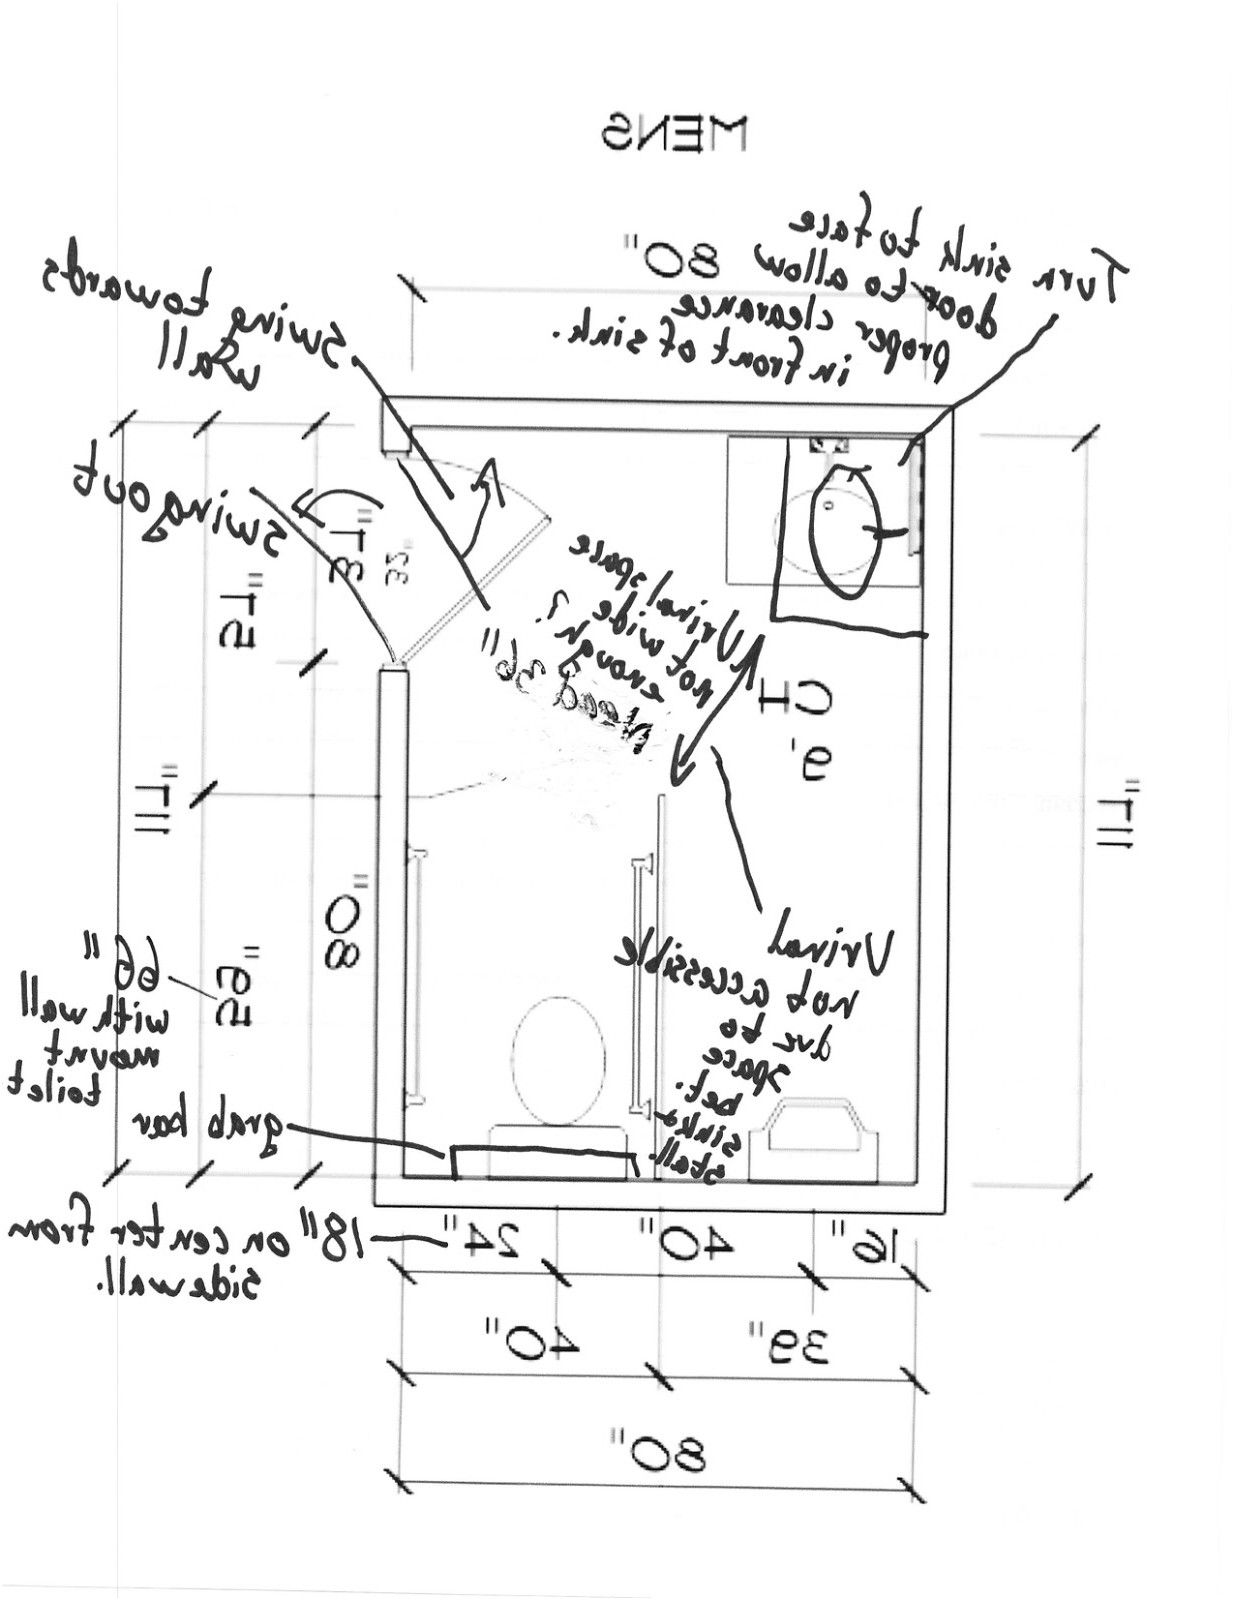 ada redesigning a public men s bathroom based on ada regulations from Ada  Bathroom Design Guidelines